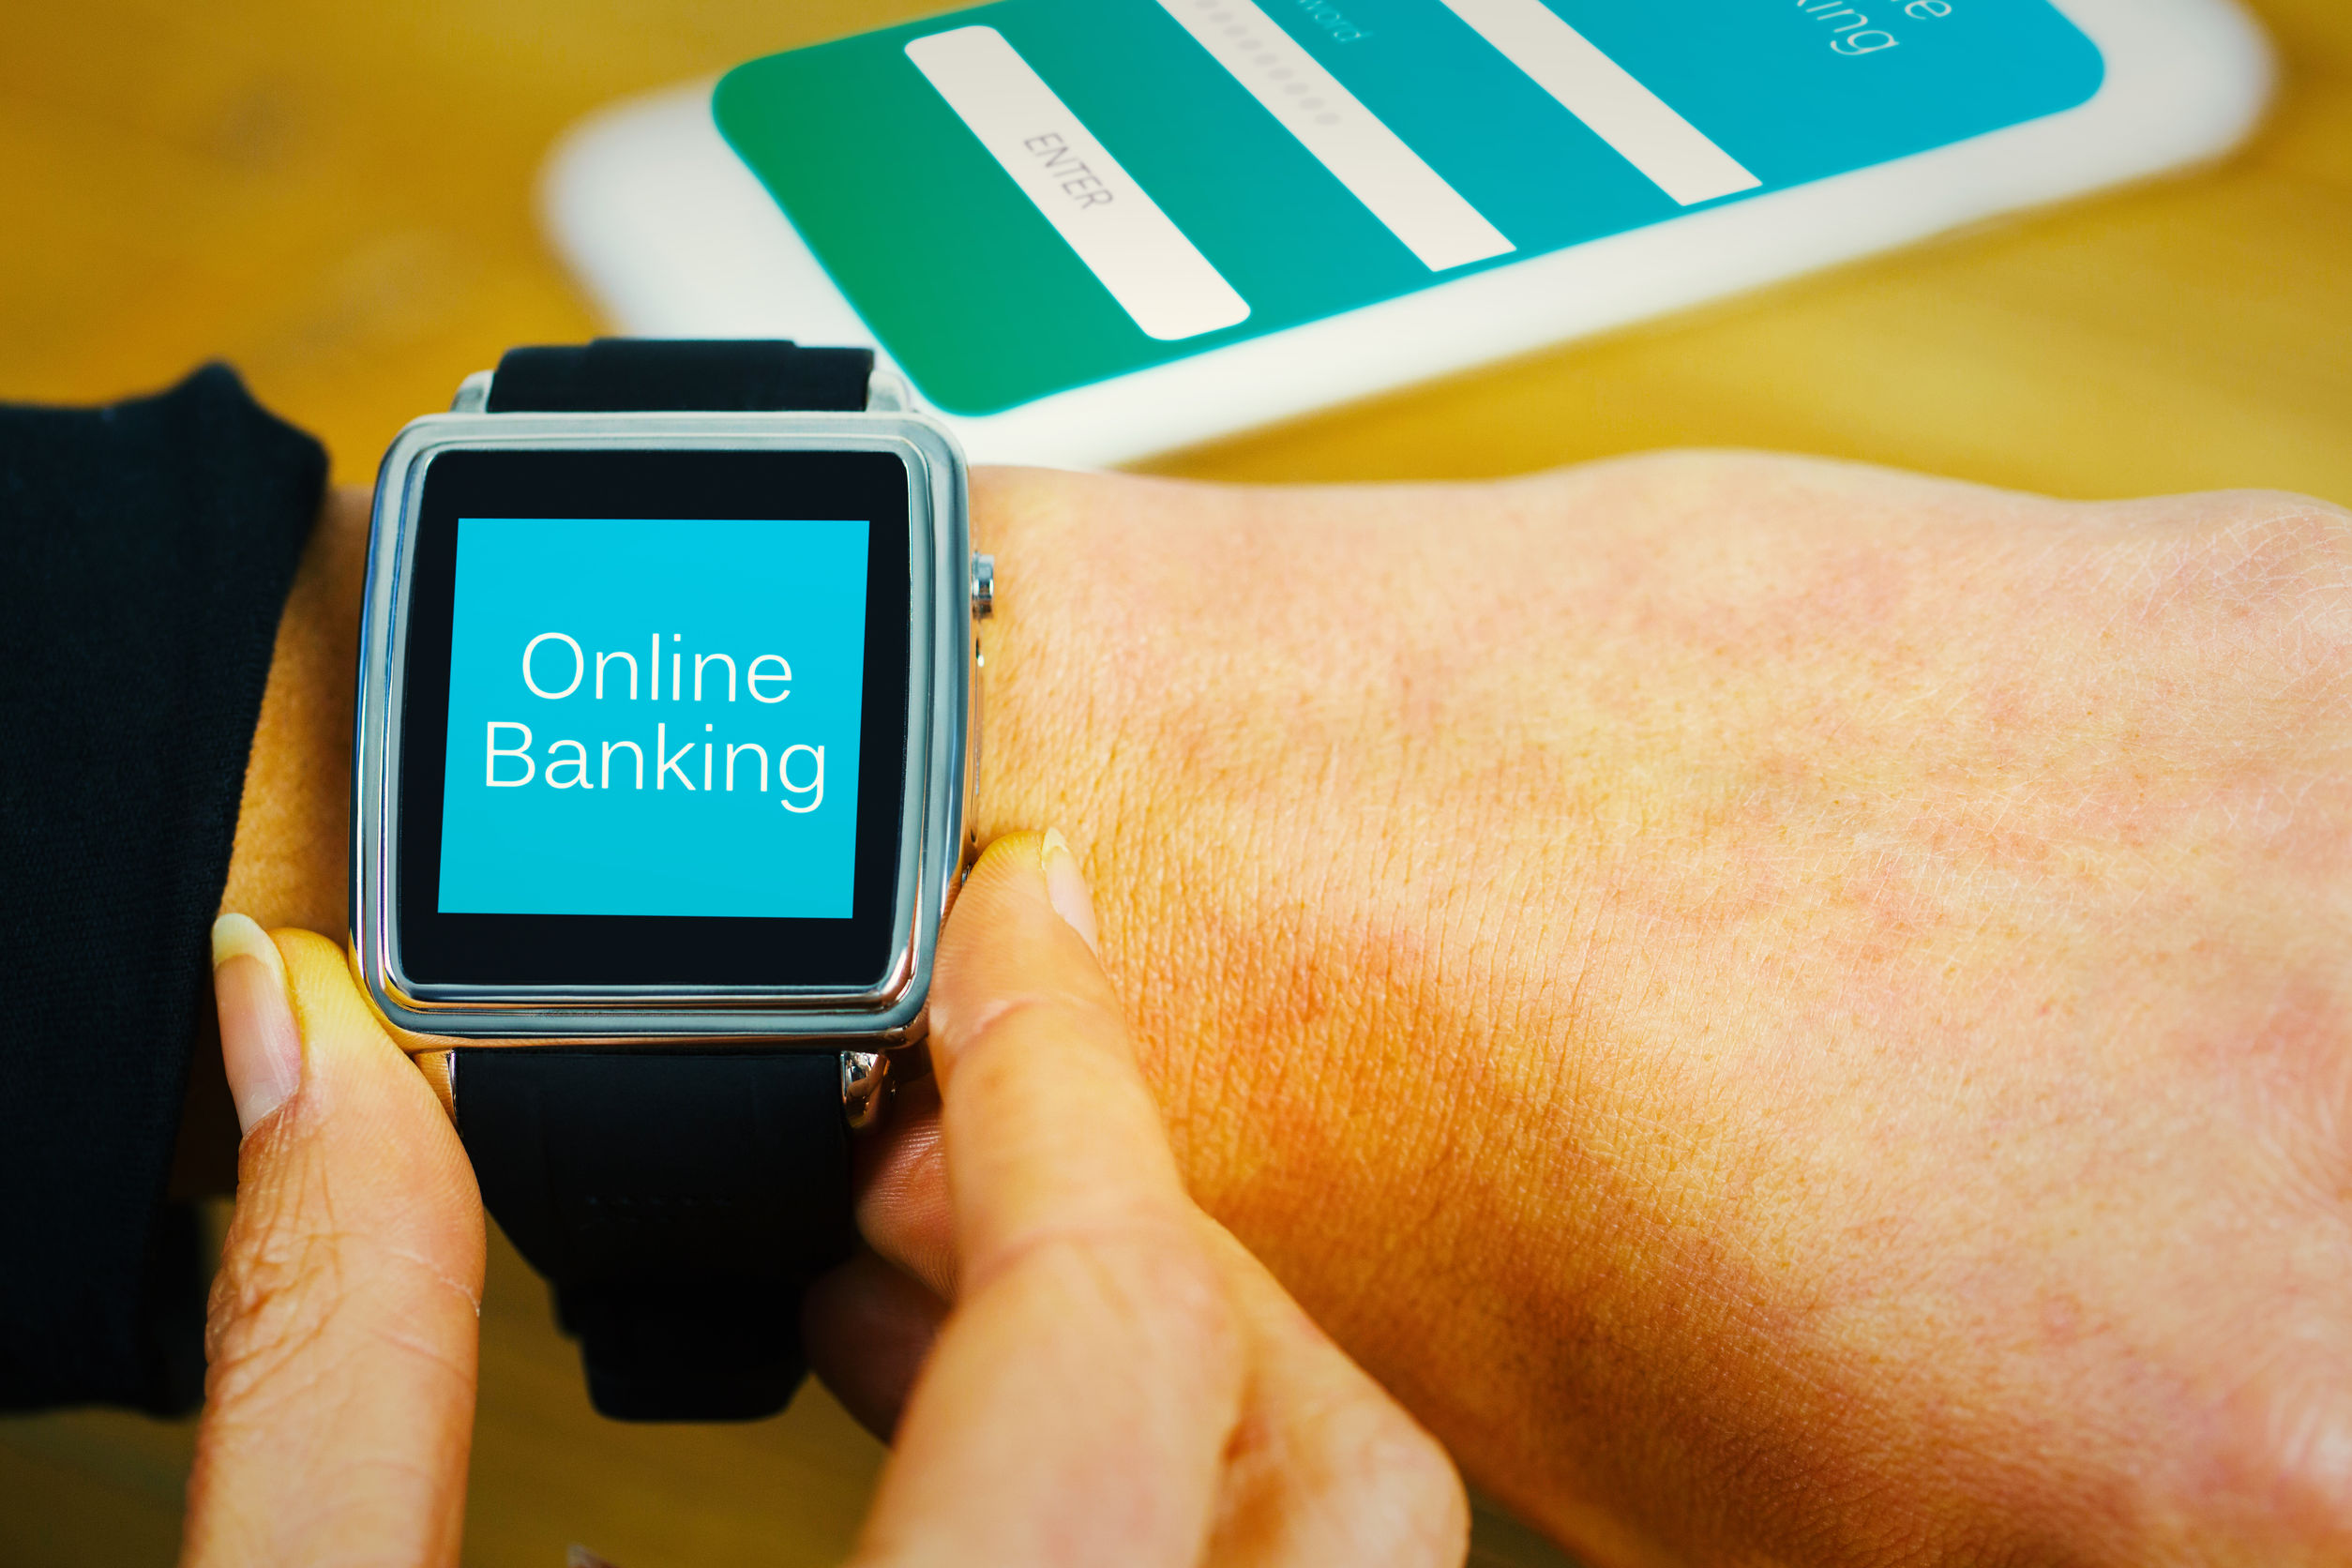 Mobile banking - Is personal financial advice a thing of the past?